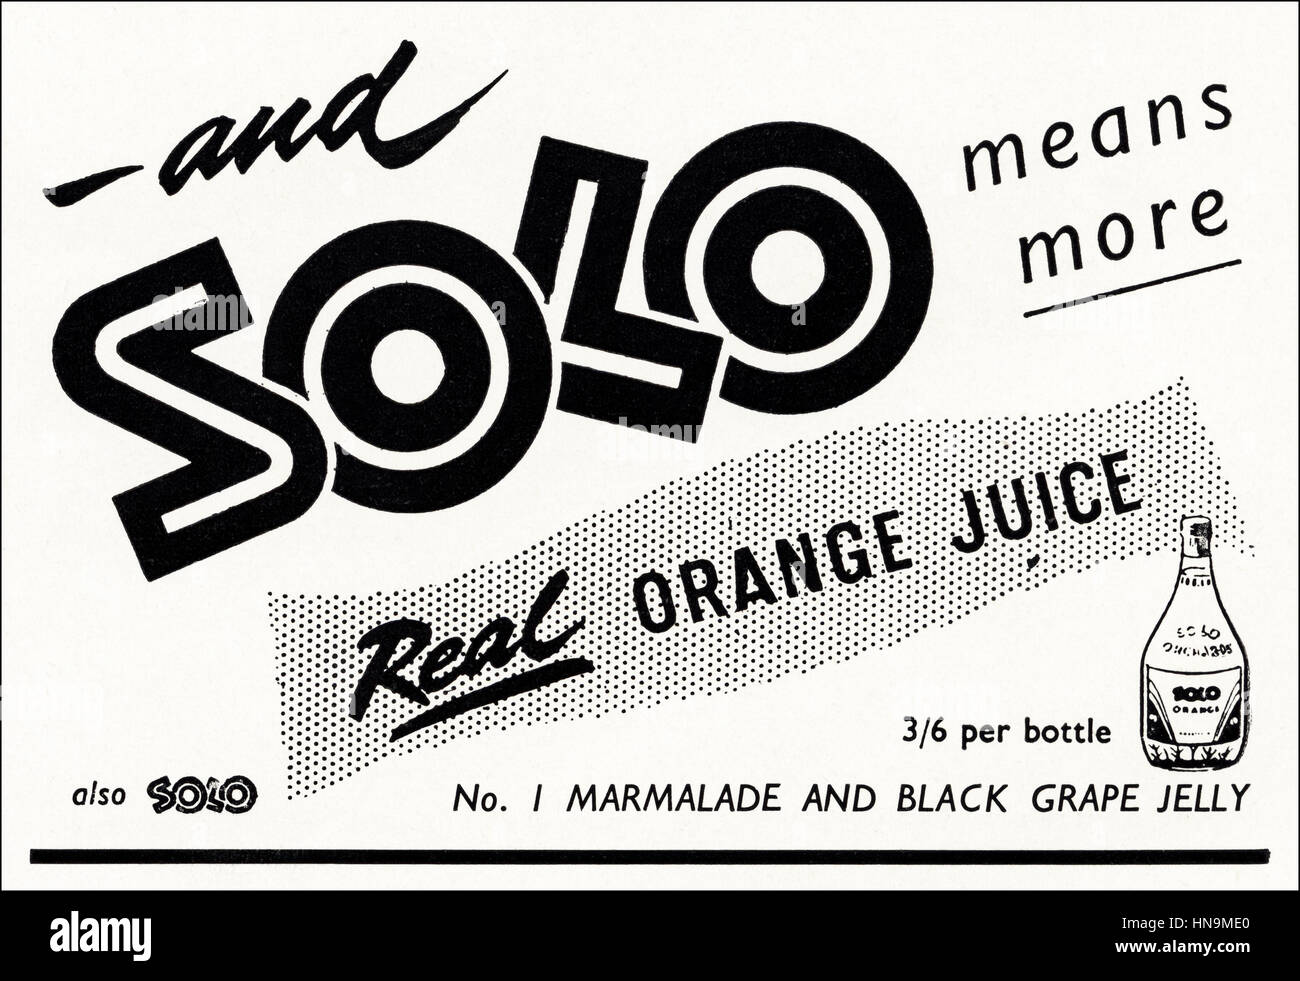 1950s advertising advert from original old vintage English magazine dated 1950 advertisement for Solo orange juice - Stock Image